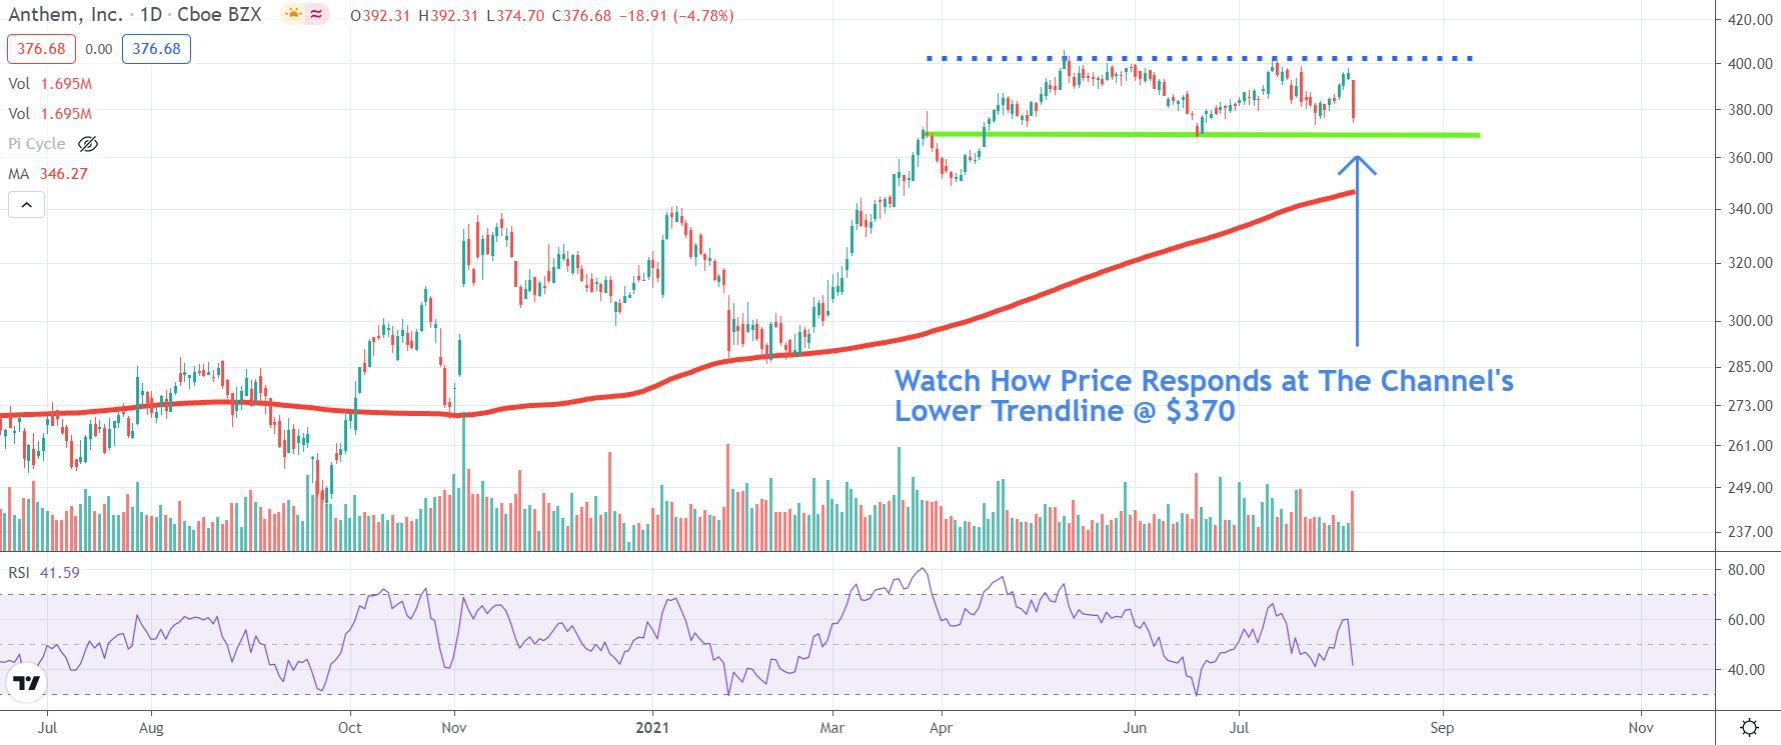 Chart depicting the share price of Anthem, Inc. (ANTM)